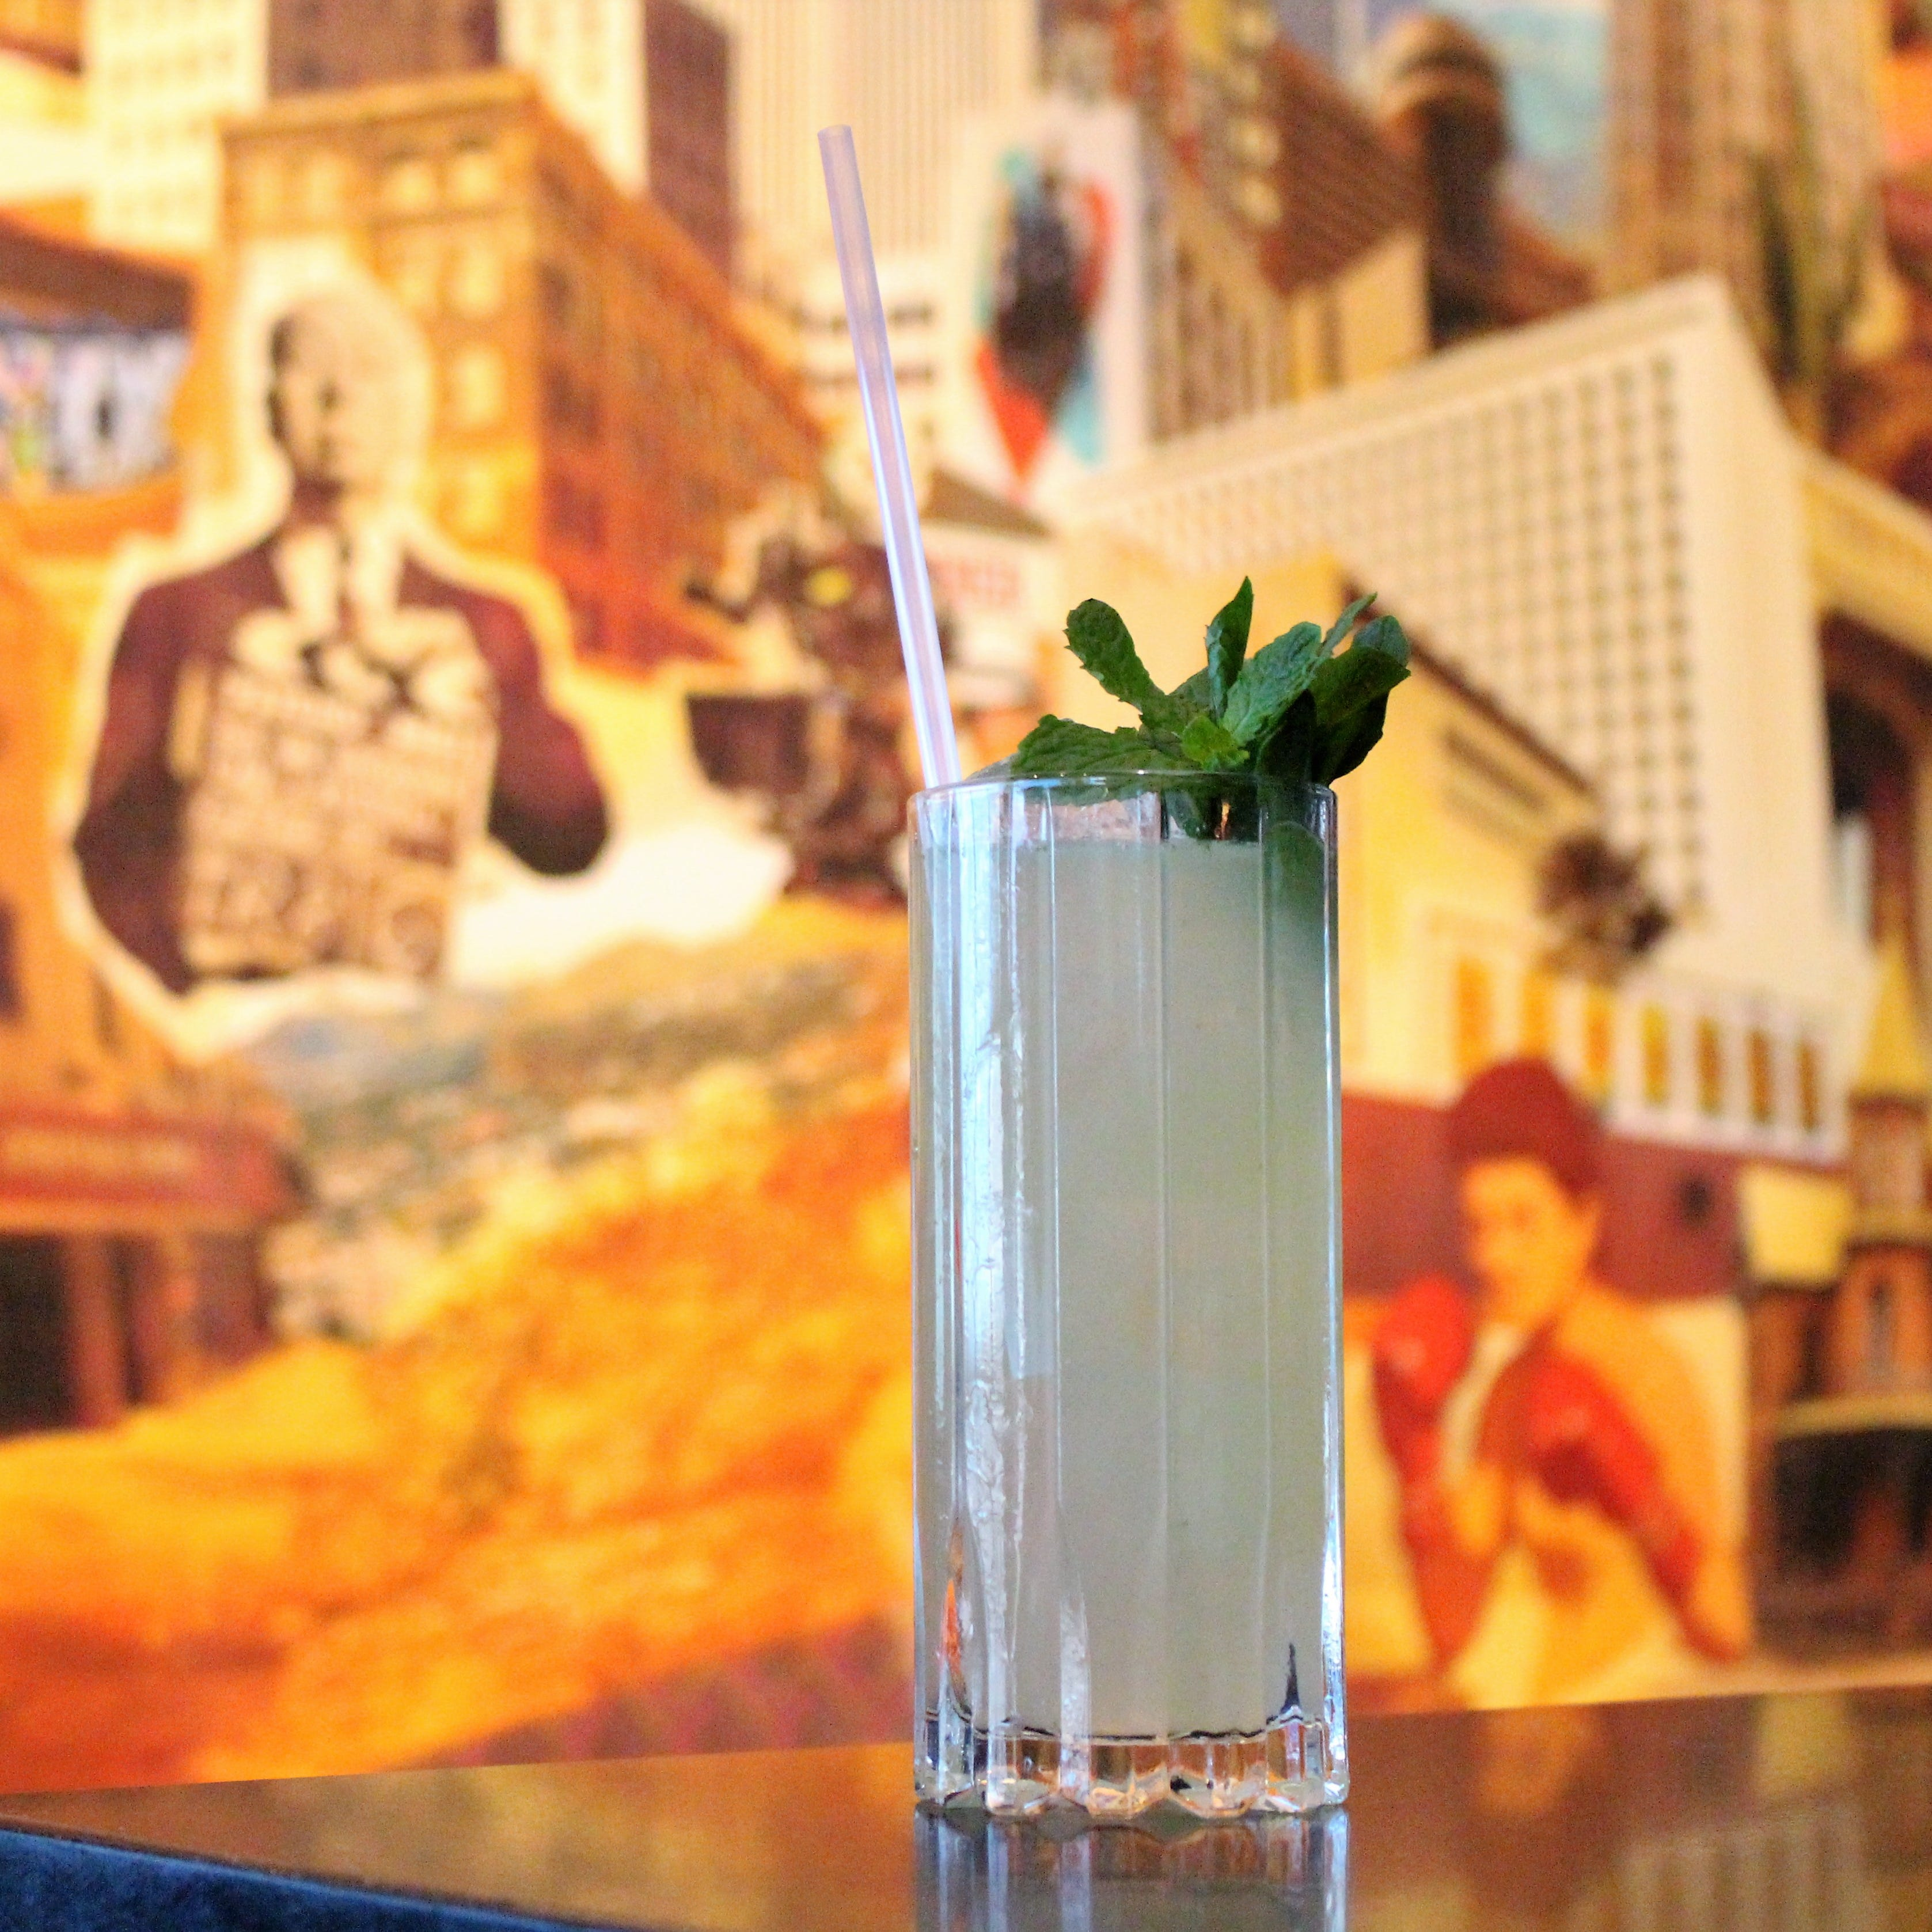 Little Rituals is 'the Ferrari of bars' — and it opens this weekend in downtown Phoenix